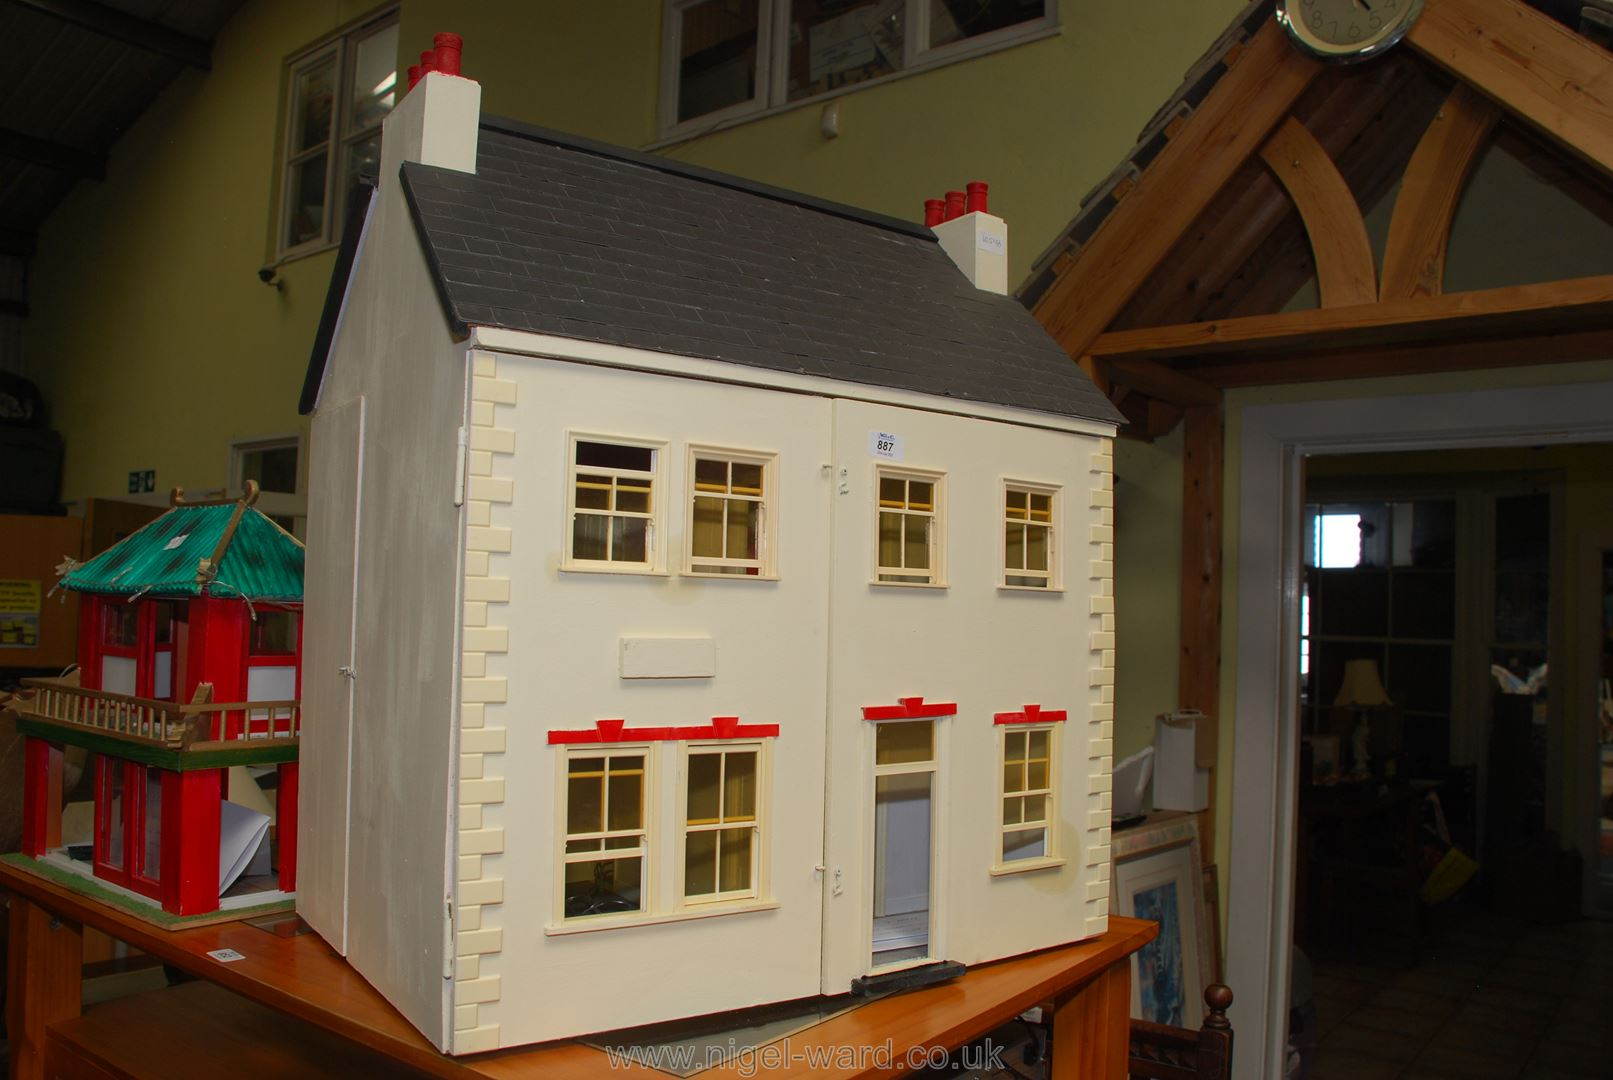 Dolls house with battery operated lights,